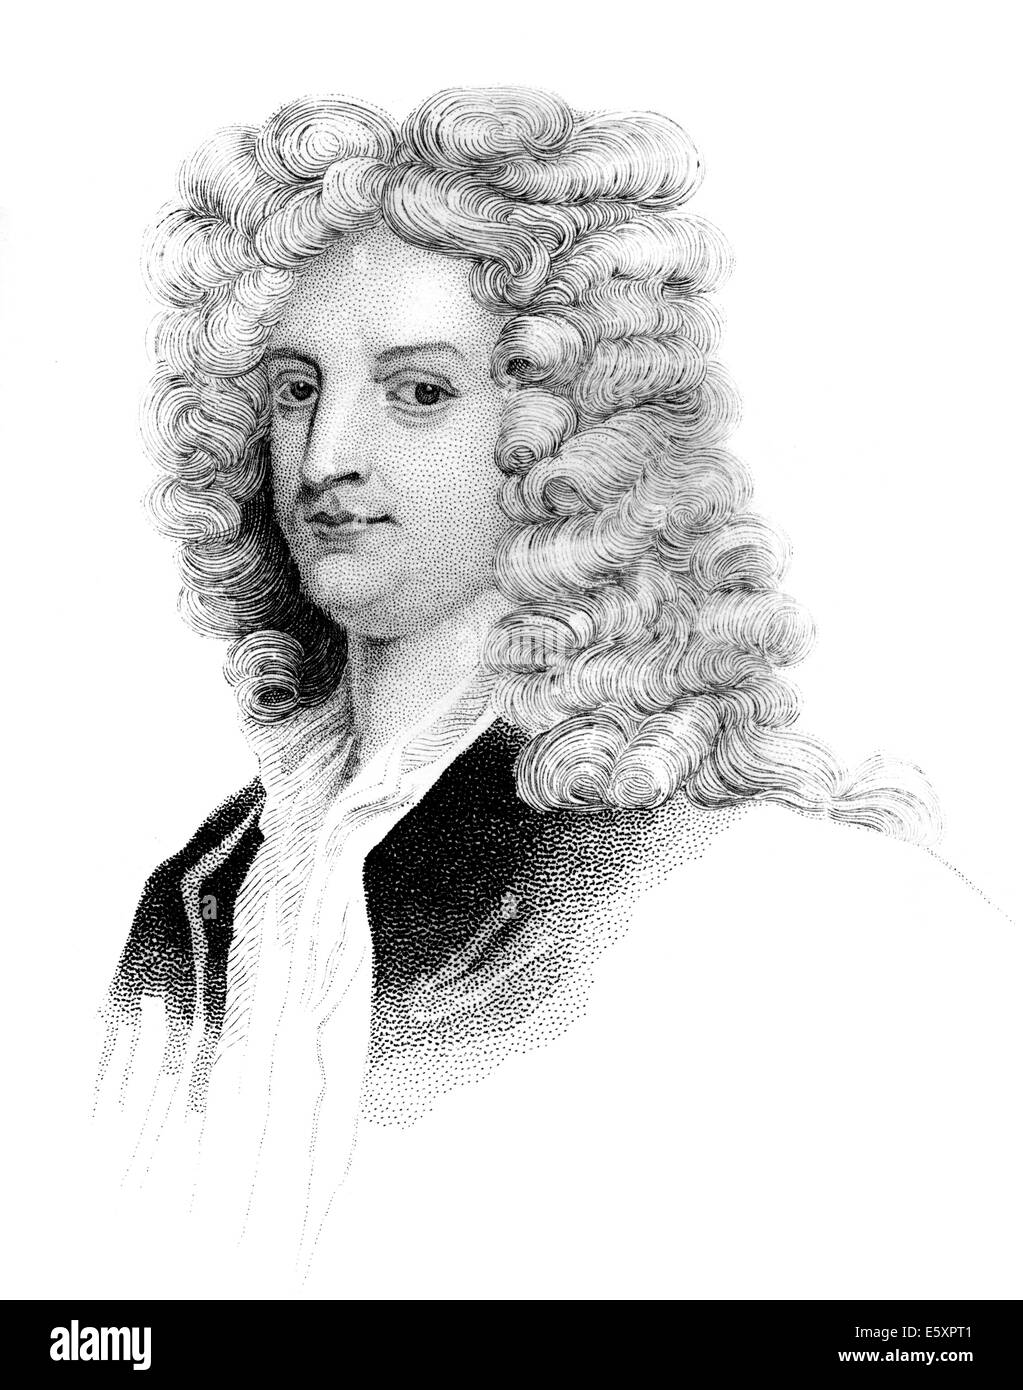 joseph addison essayist portait of joseph addison an english essayist poet alamy portait of joseph addison an english essayist